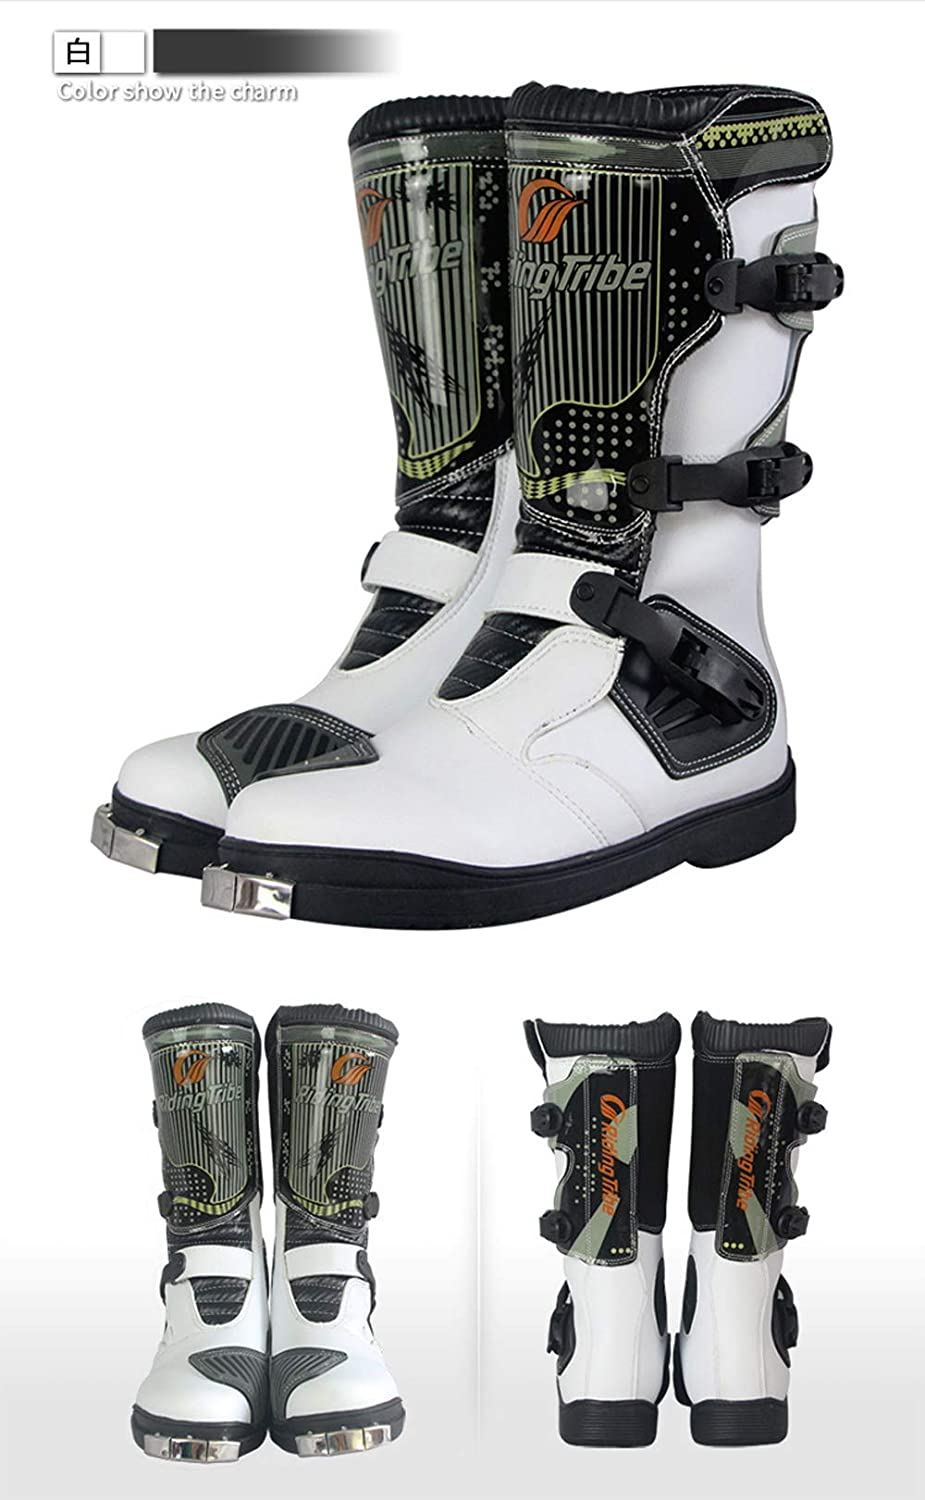 ZZKK Waterproof Leather Motorcycle Boots Professional Motorcross Racing Boots,Off-Road Motorcycle Boots,Locomotive long boots